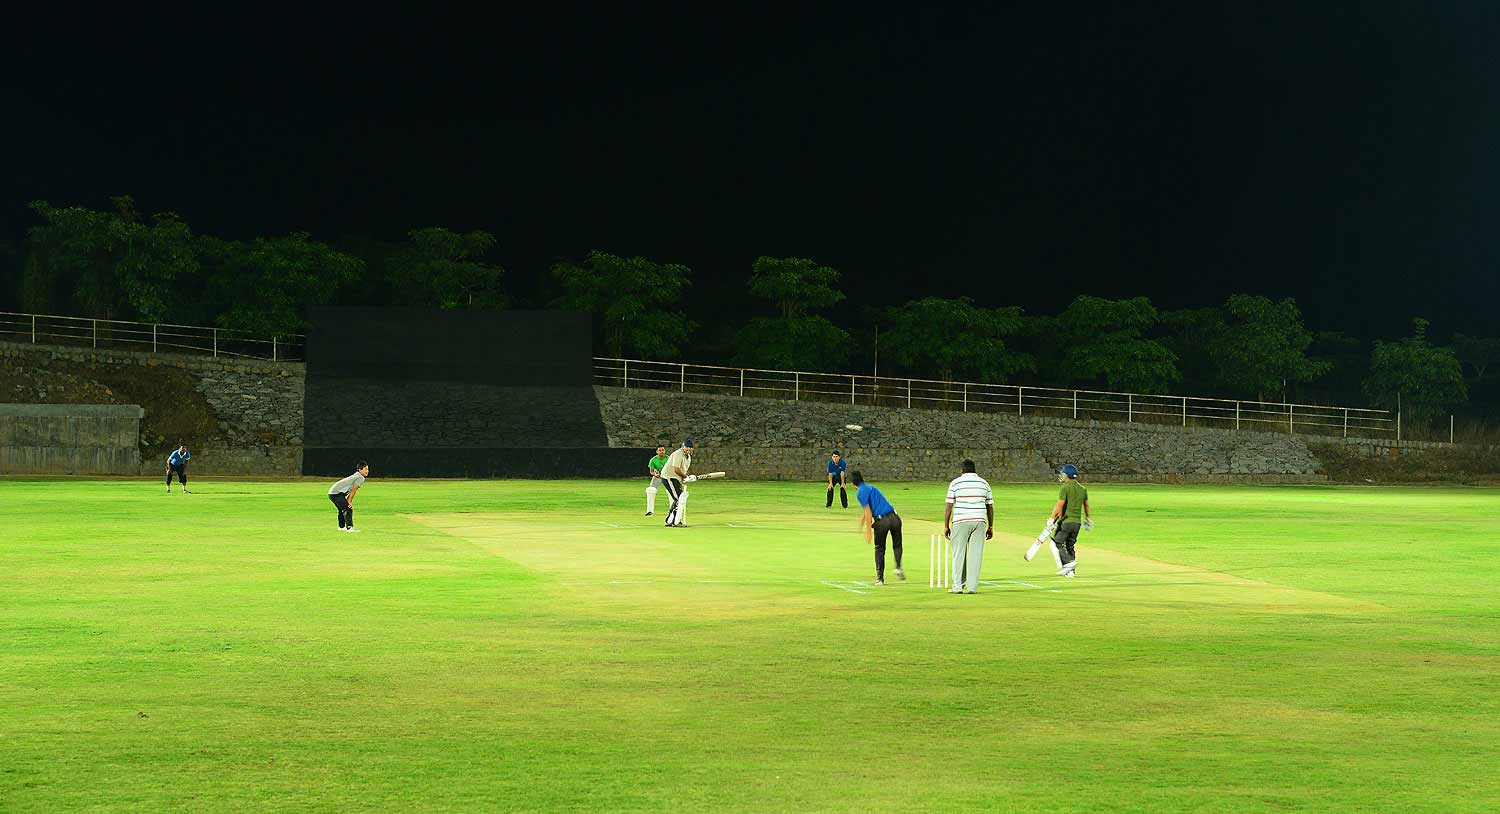 Mini Cricket Stadium, Palm Exotica